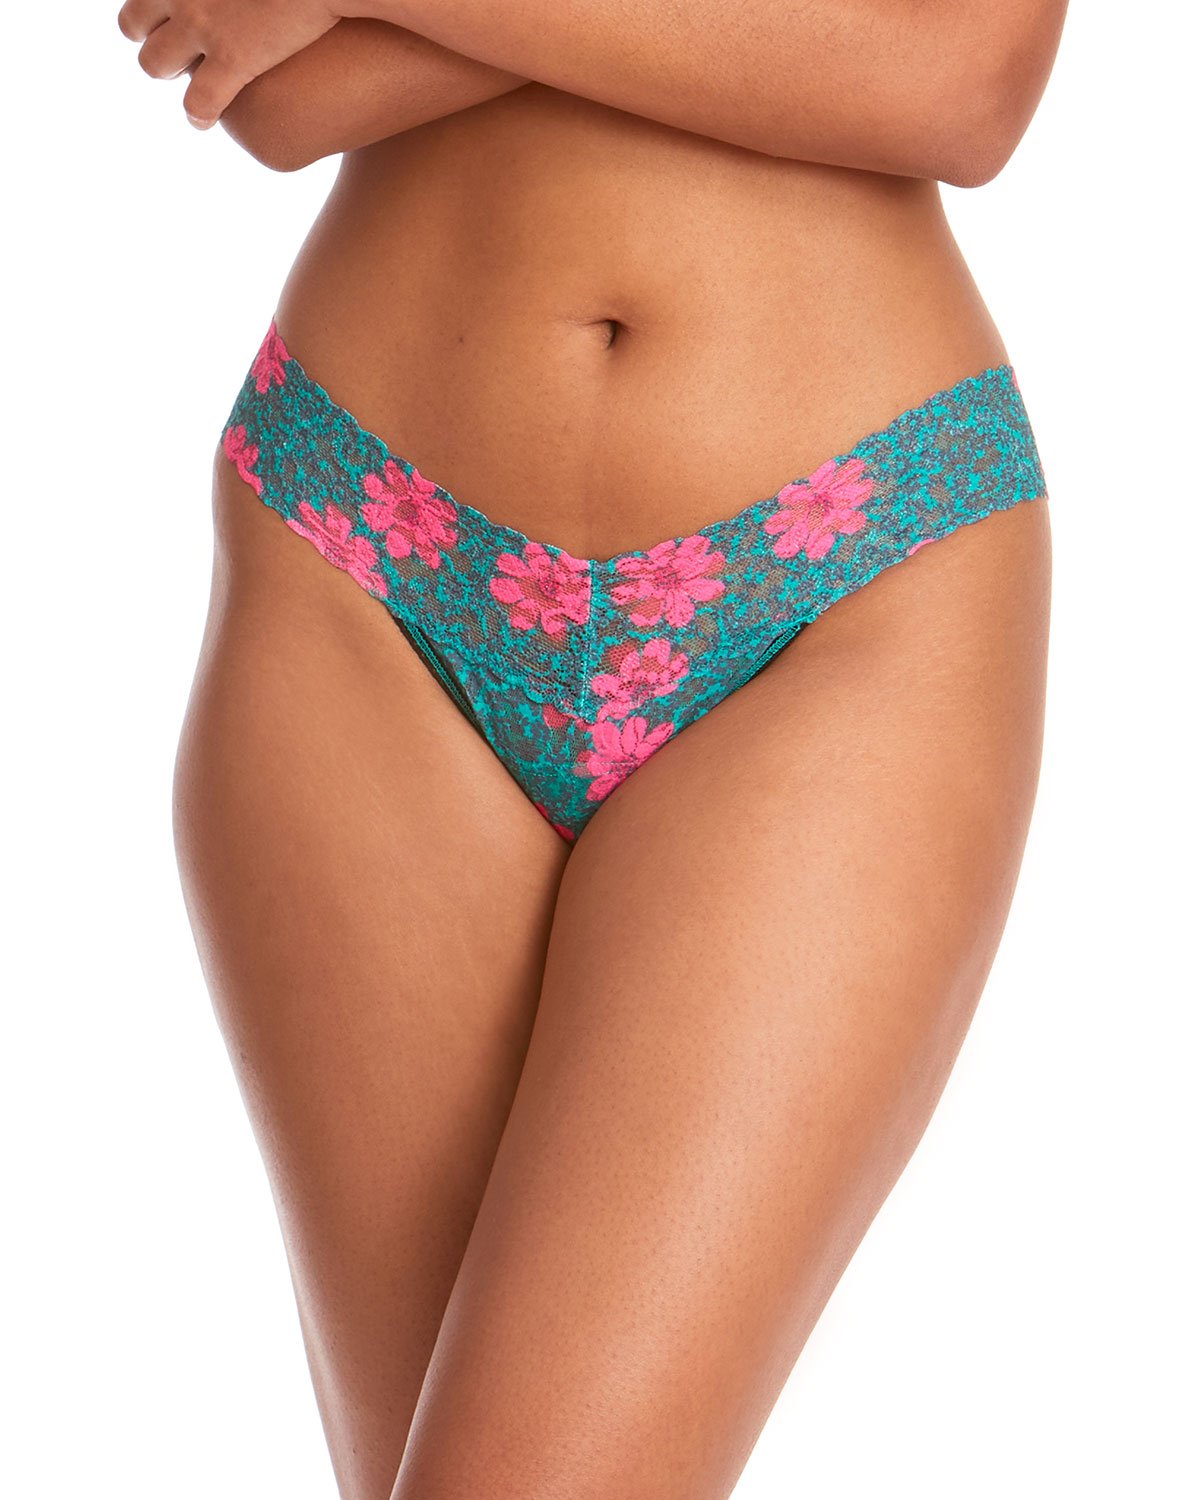 Youthquake Low-Rise Lace Thong